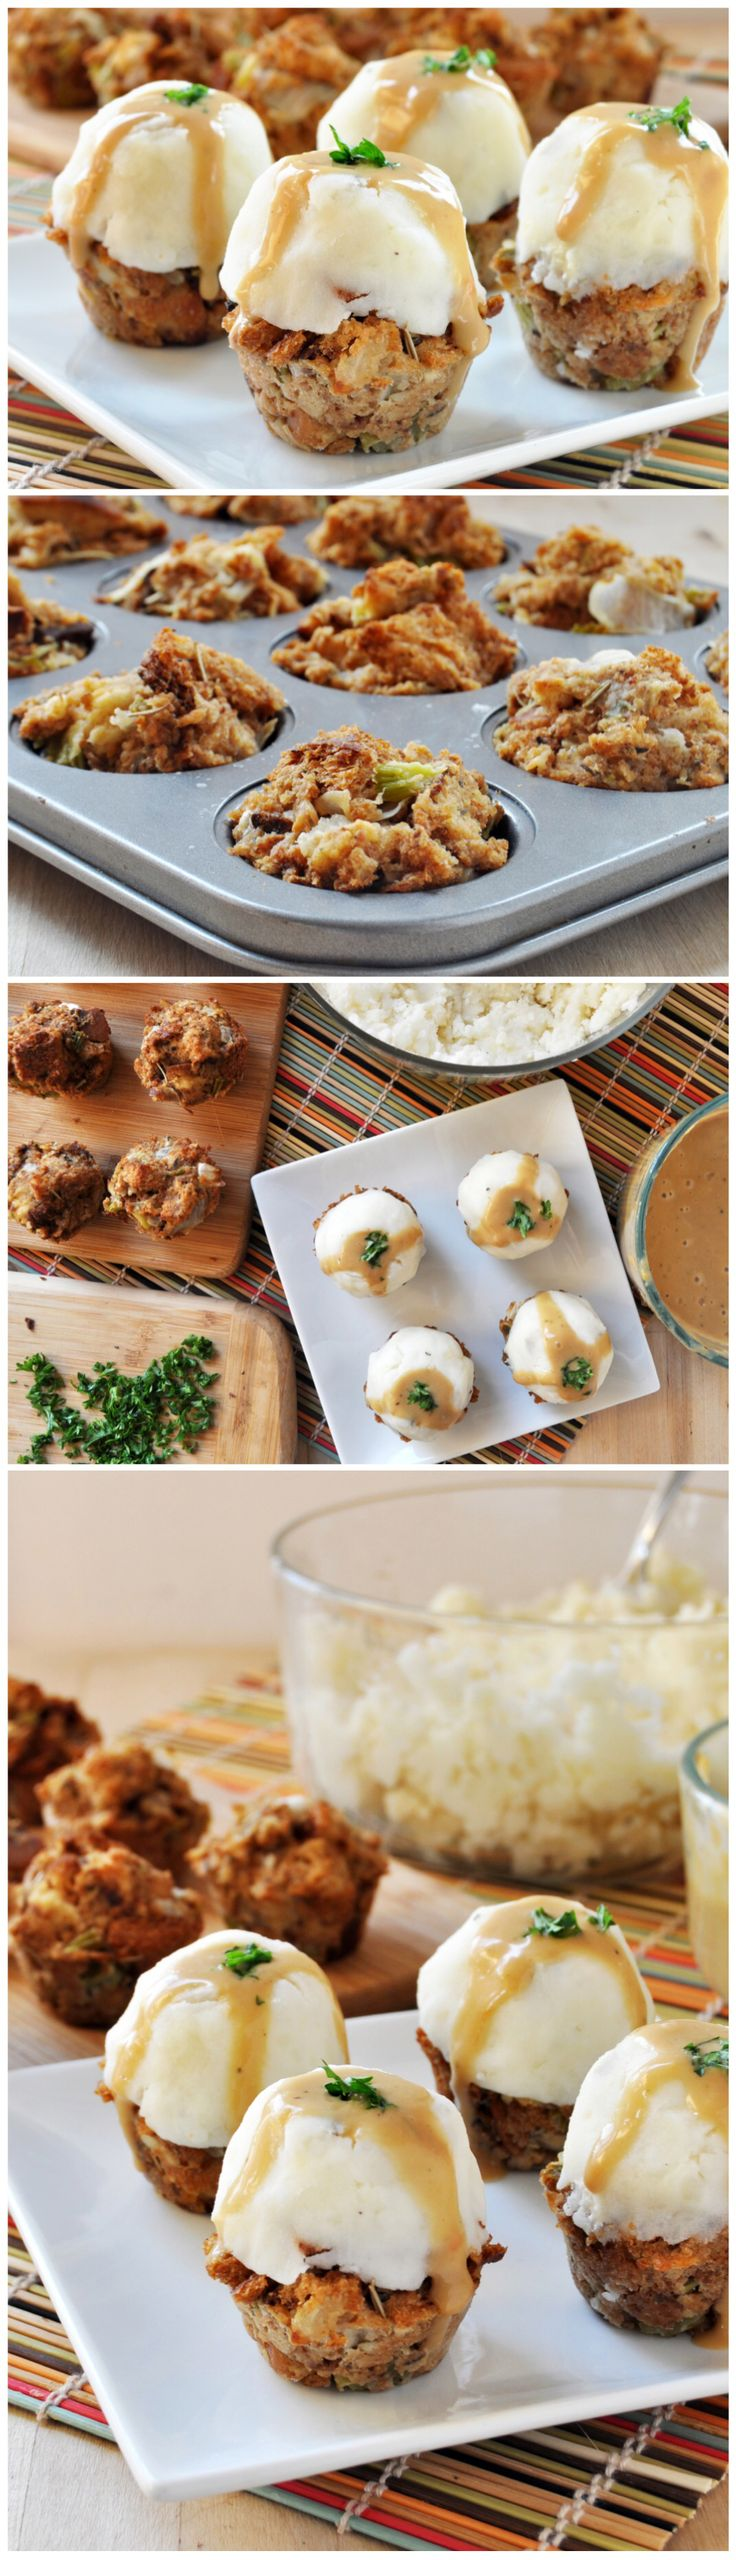 VEGAN GLUTEN-FREE THANKSGIVING: STUFFING-MUFFINS WITH MASHED POTATOES AND GRAVY